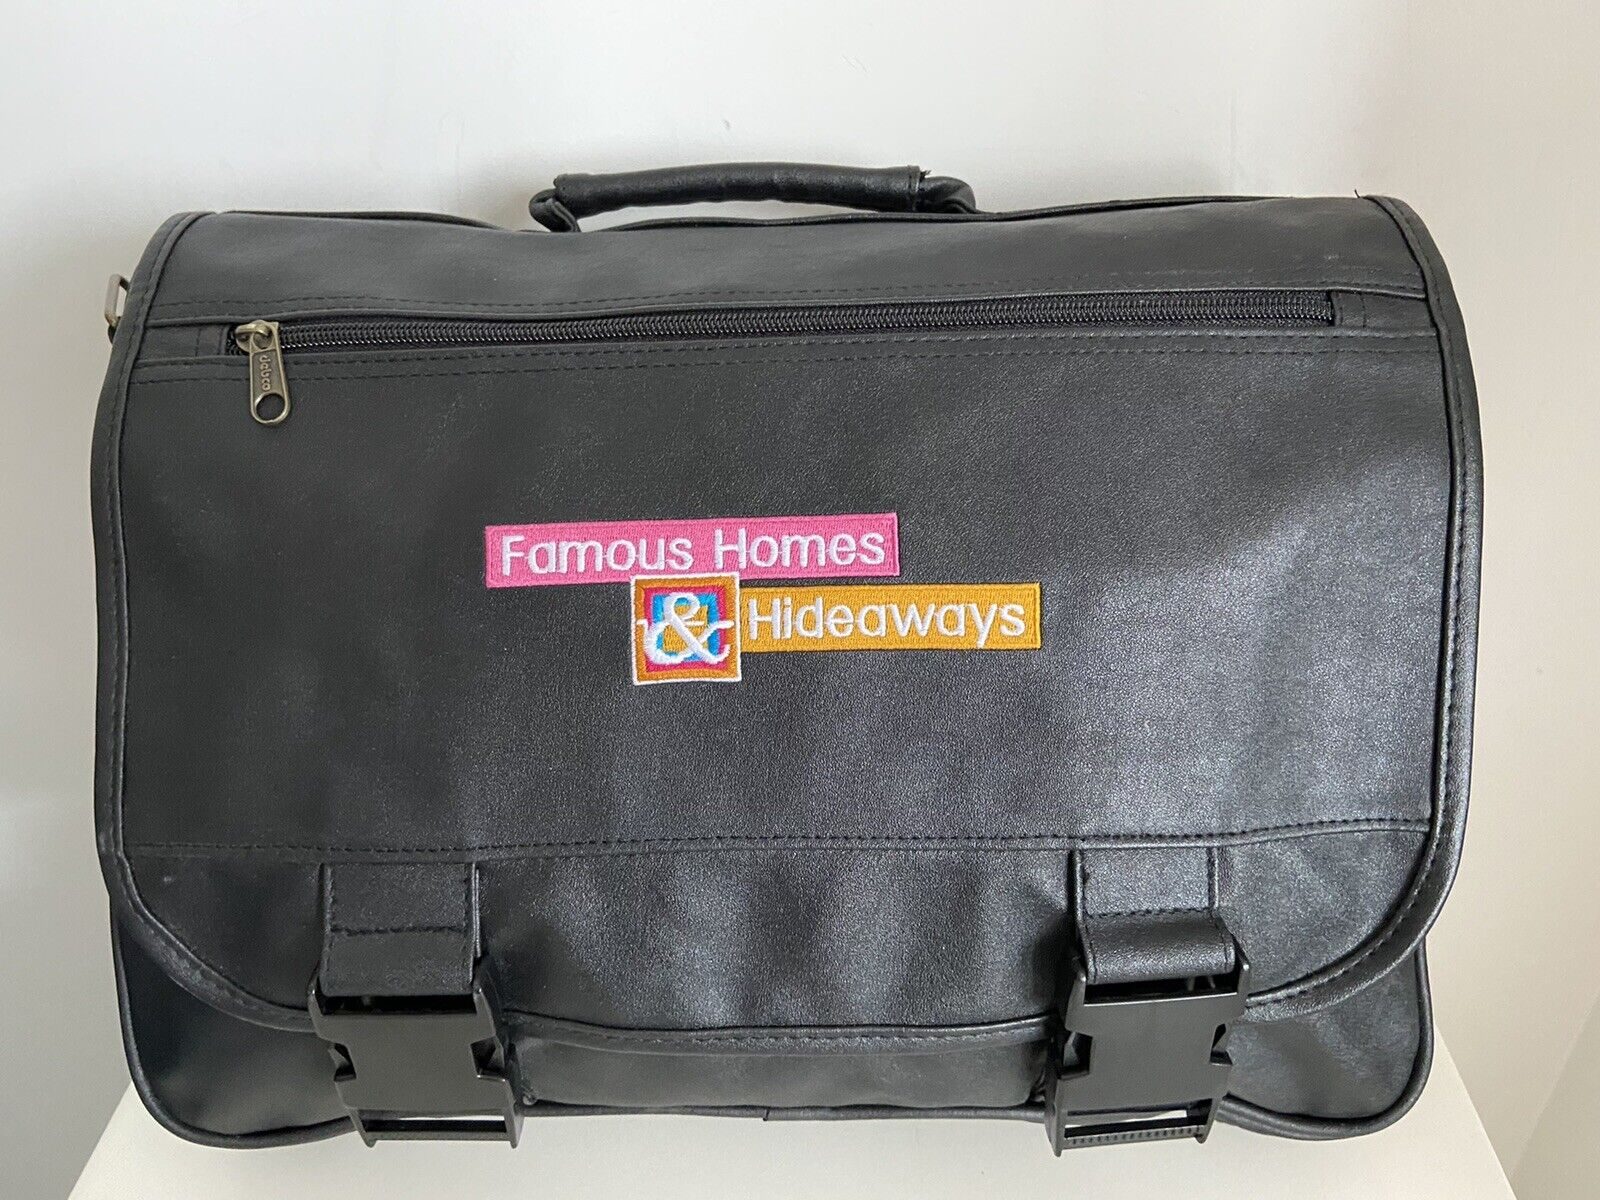 Famous Homes Hideaways TV Show Carryall,Organizer,Tote,Flap,Expands,Travel Bag - $11.00